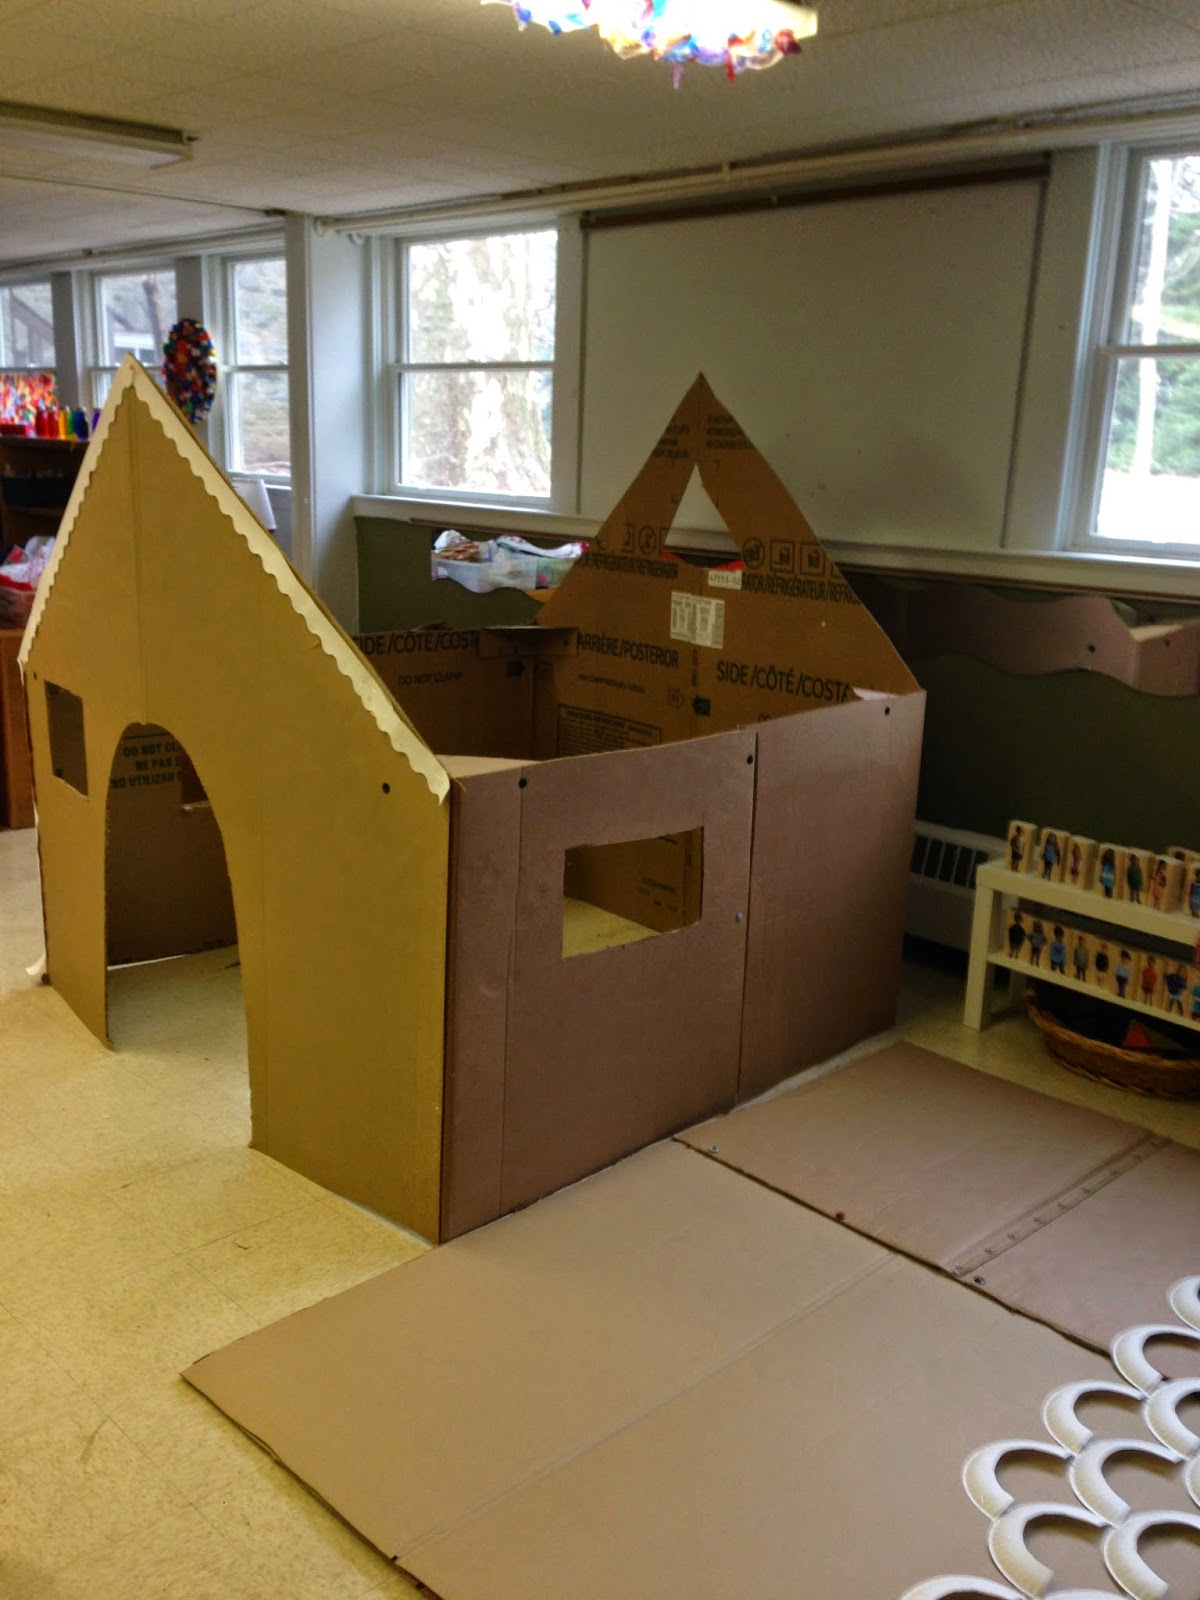 Mrs goff 39 s pre k tales our life size gingerbread house for How to make a house from cardboard box